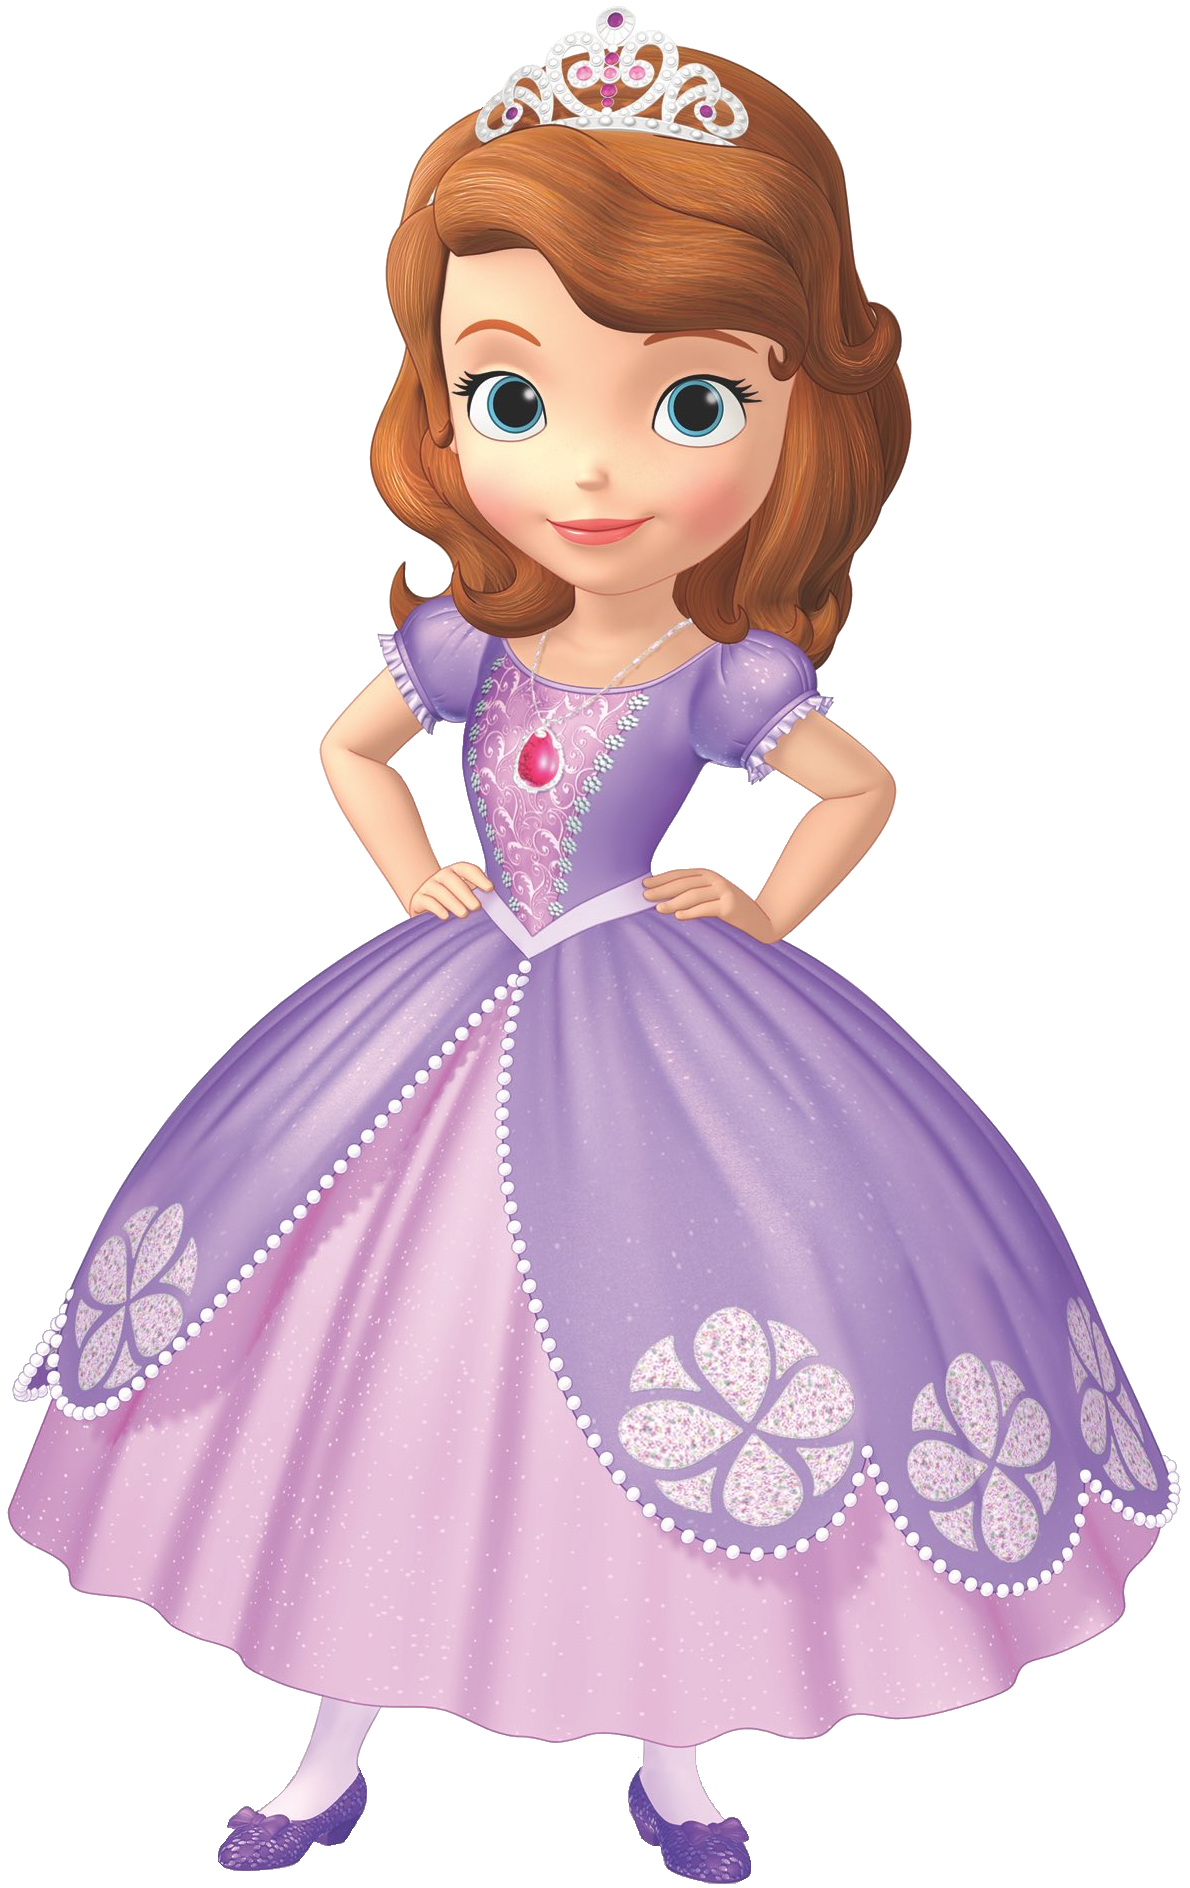 Princess Sofia Sofia The First Wiki Fandom